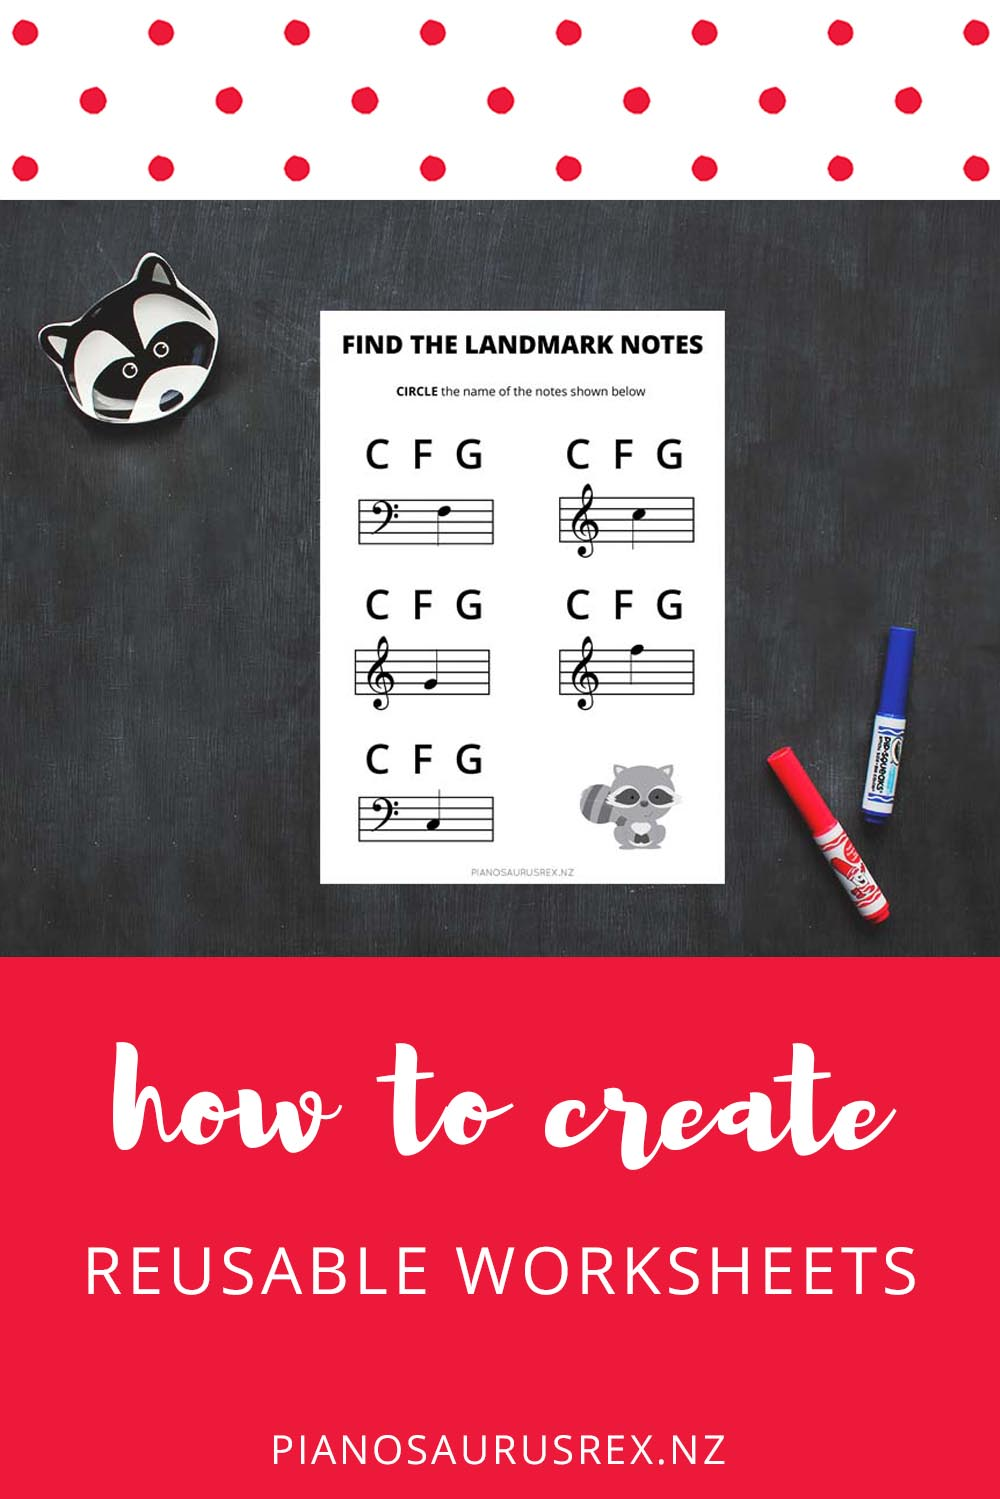 How To Create Reusable Worksheets